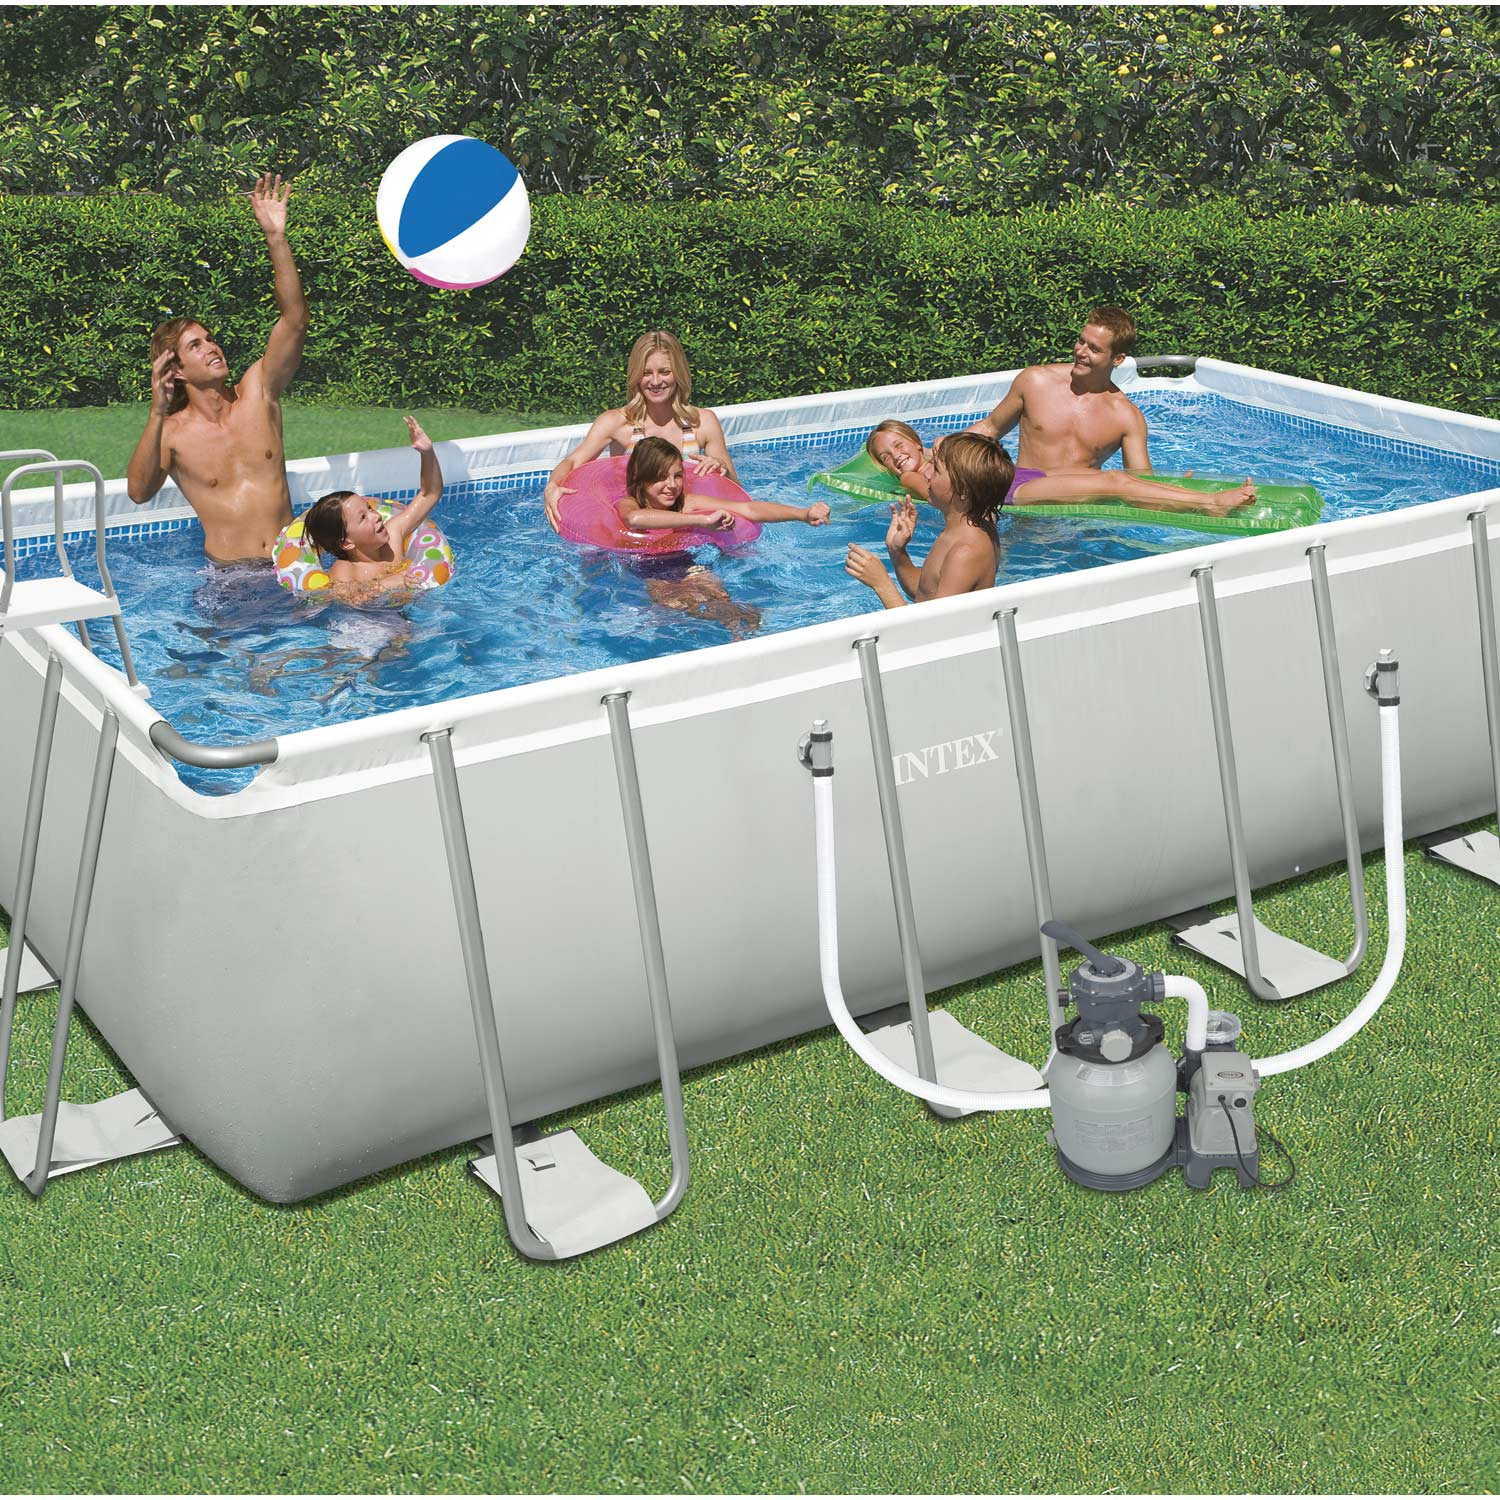 Piscine hors sol autoportante tubulaire ultra silver intex for Piscine hors sol 1m30